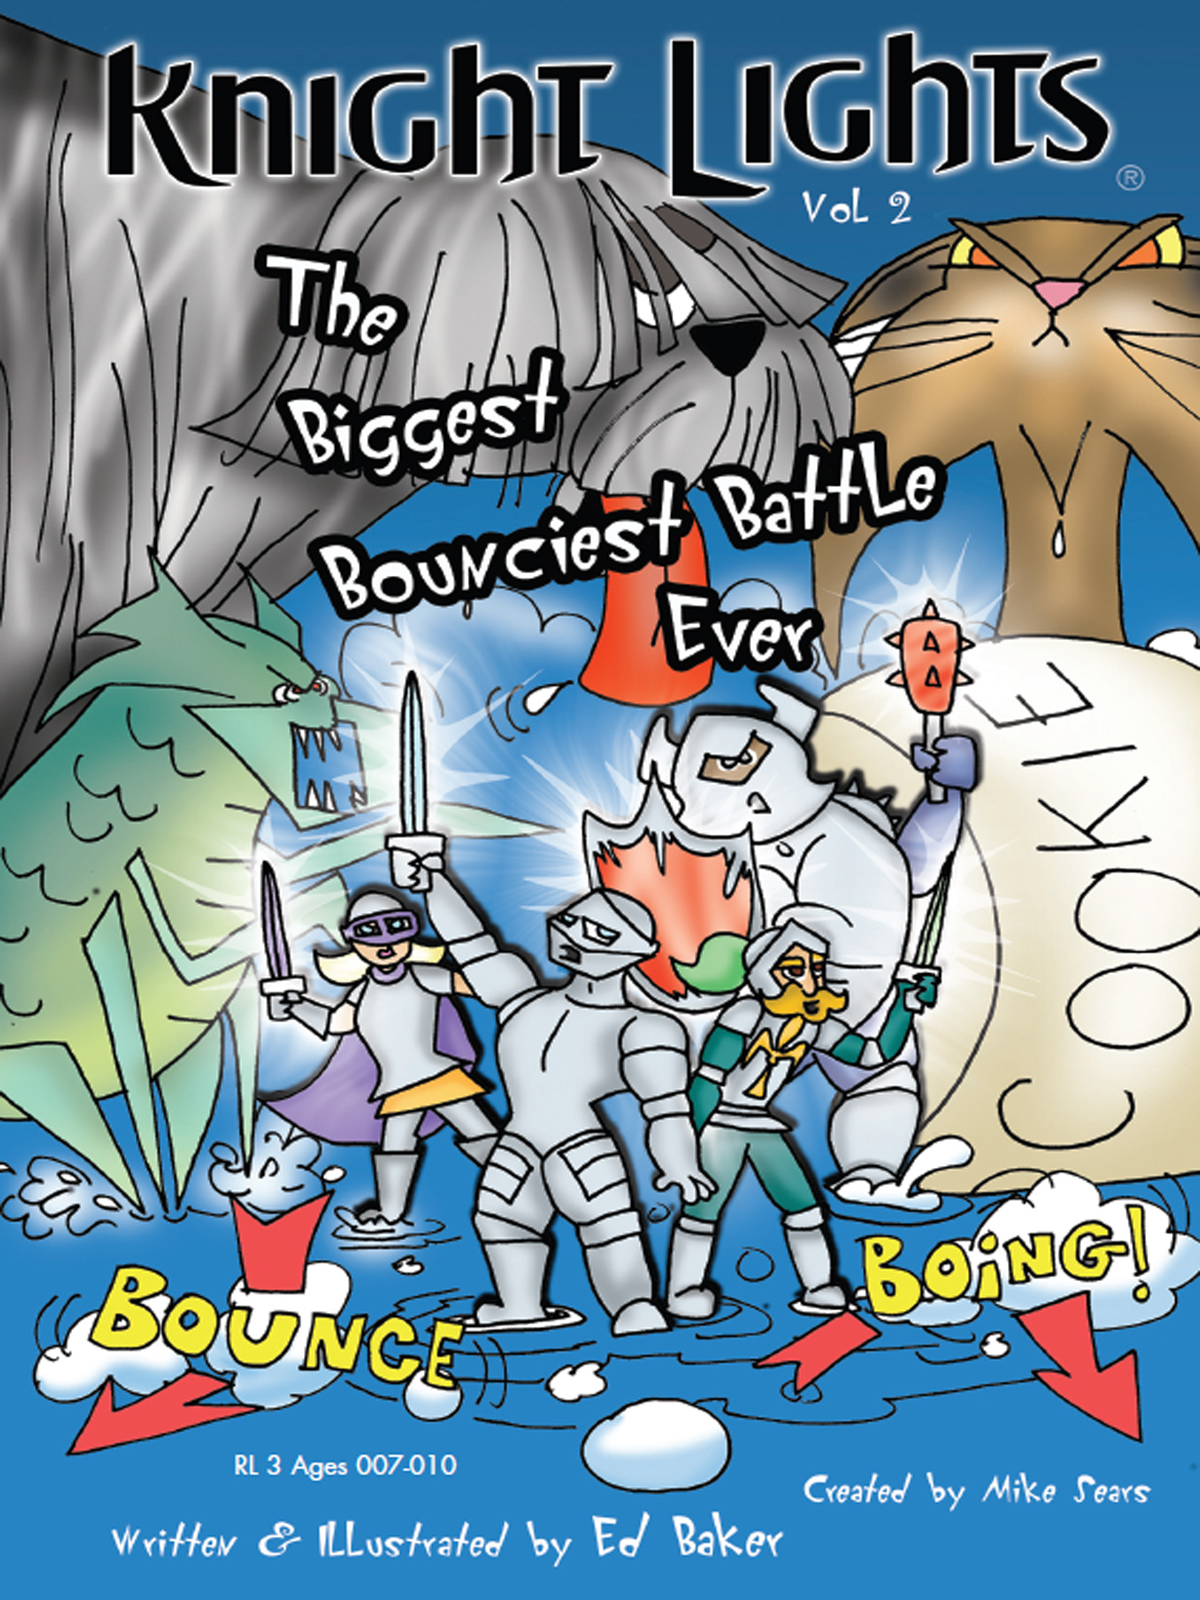 Cover of Knight Lights Vol 2: The Biggest Bounciest Battle Ever